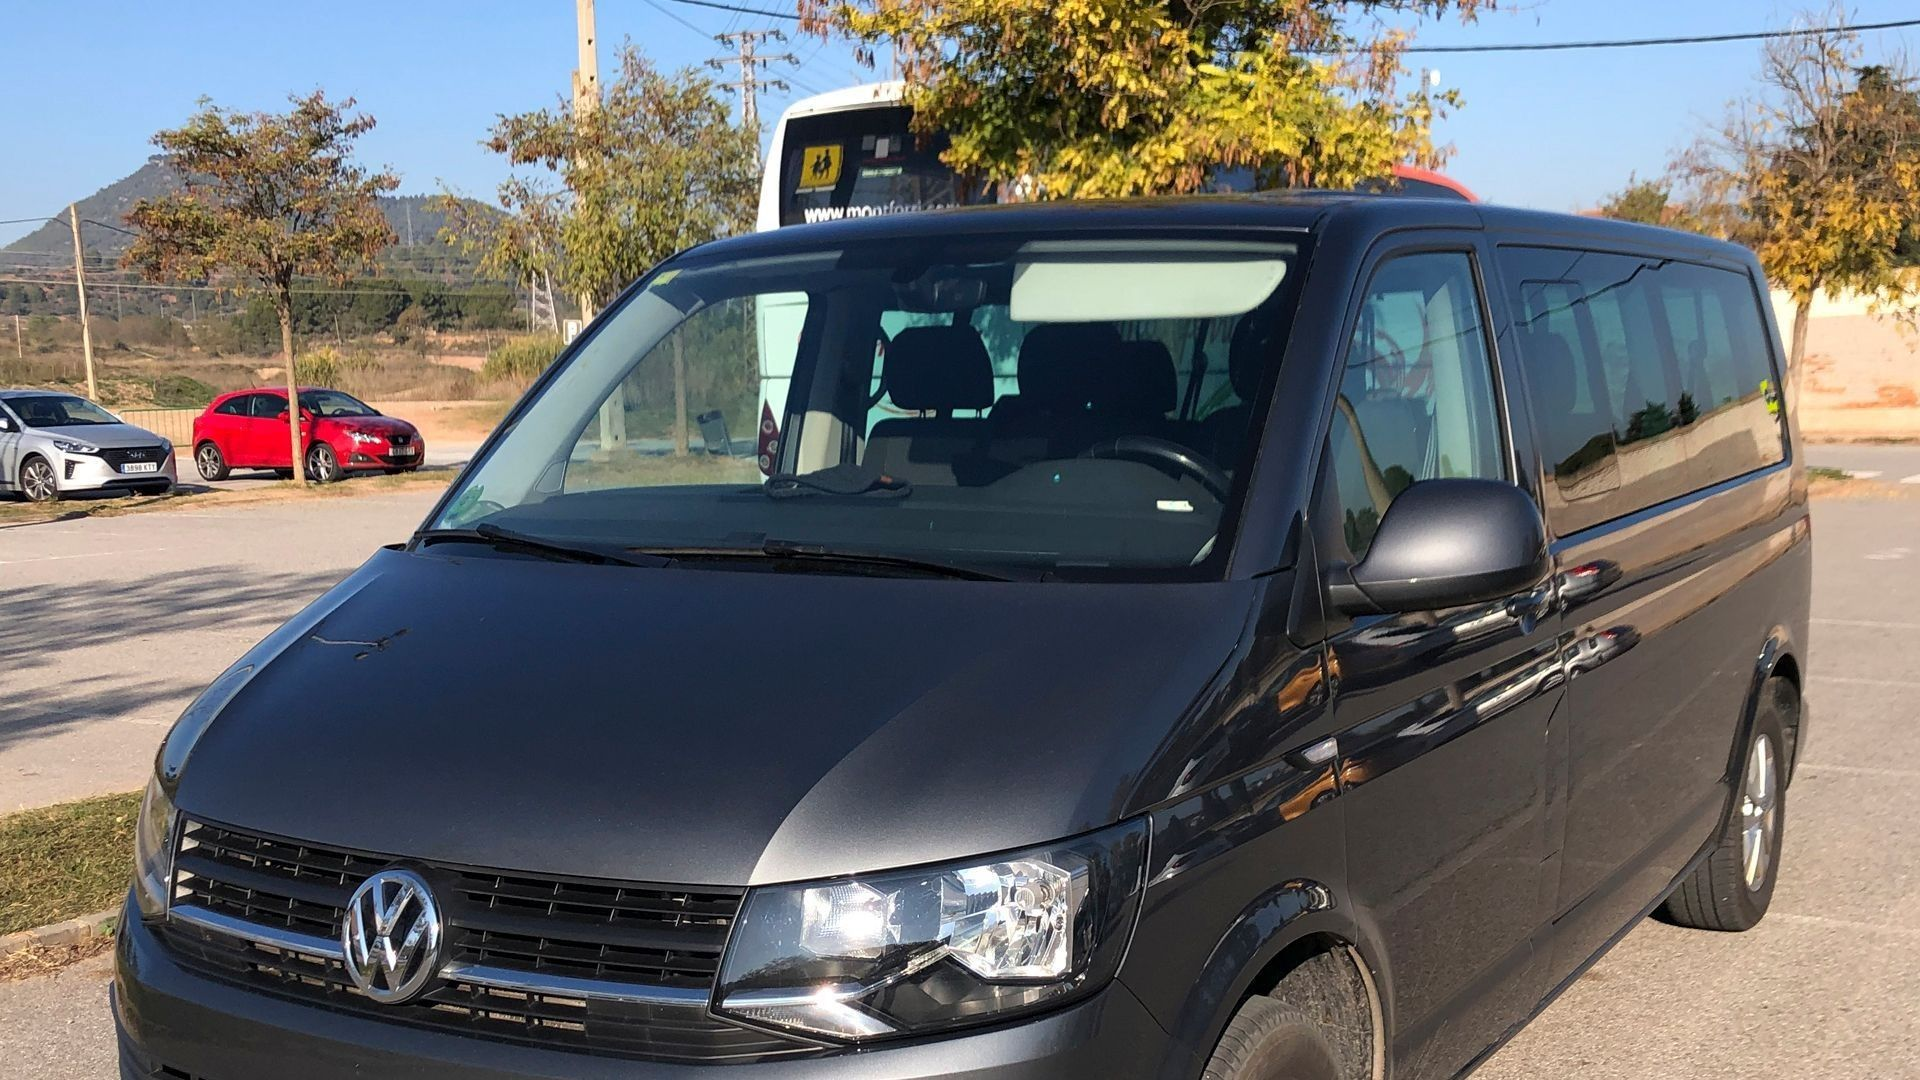 Taxis Bages